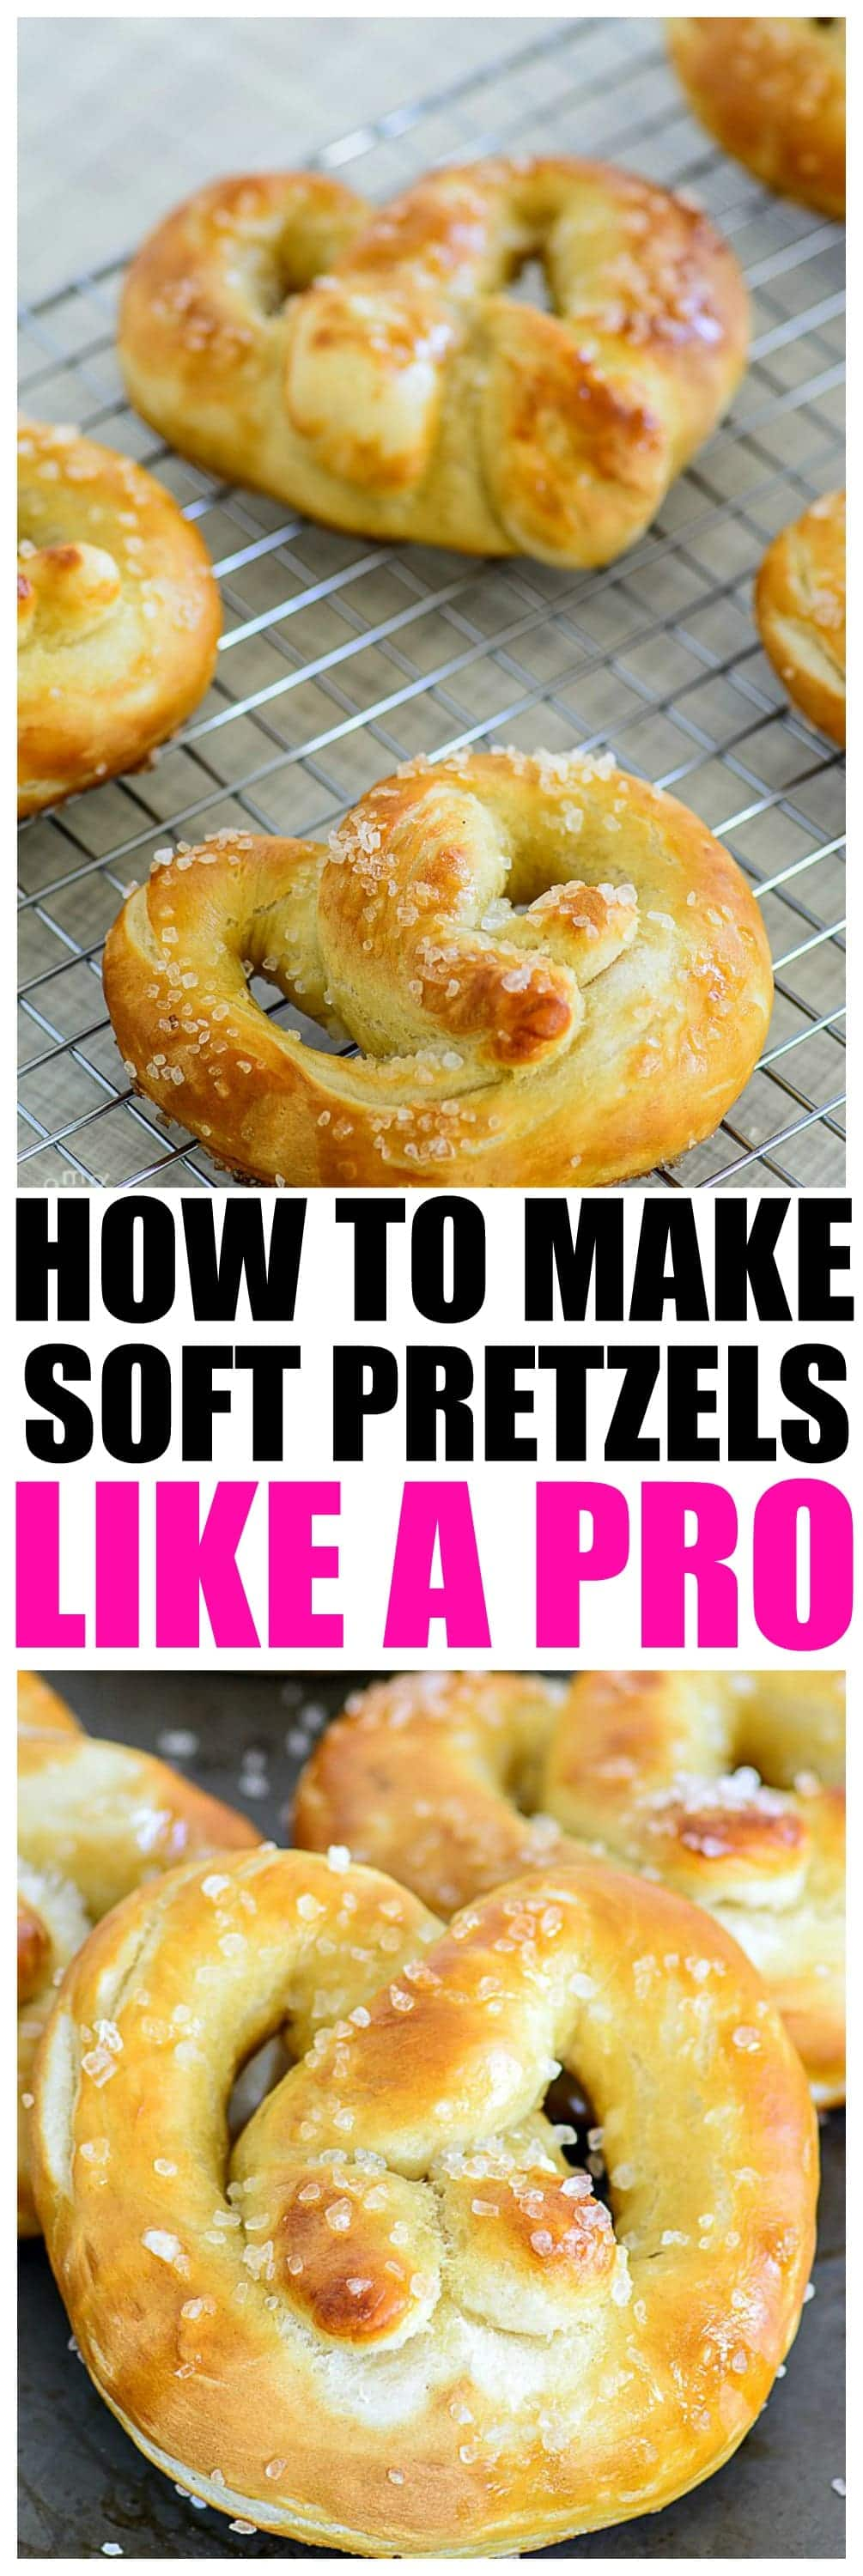 How to make Soft Pretzels like a pro, EASY pretzel recipe that will make you able to make your own custom pretzels at home